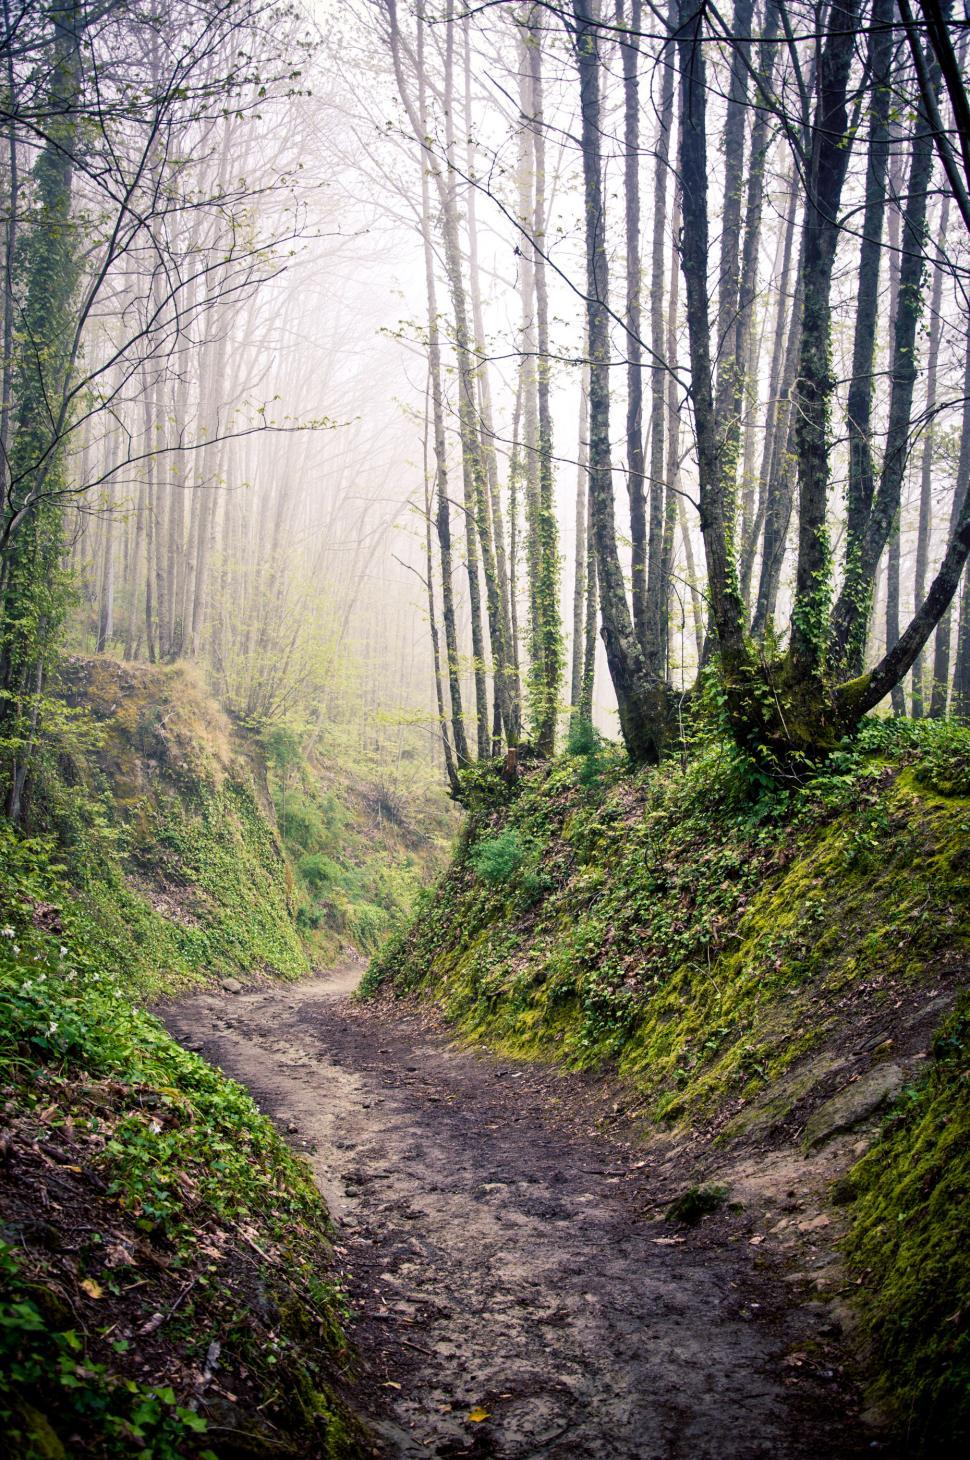 Download Free Stock HD Photo of Walking path in forest with morning mist Online